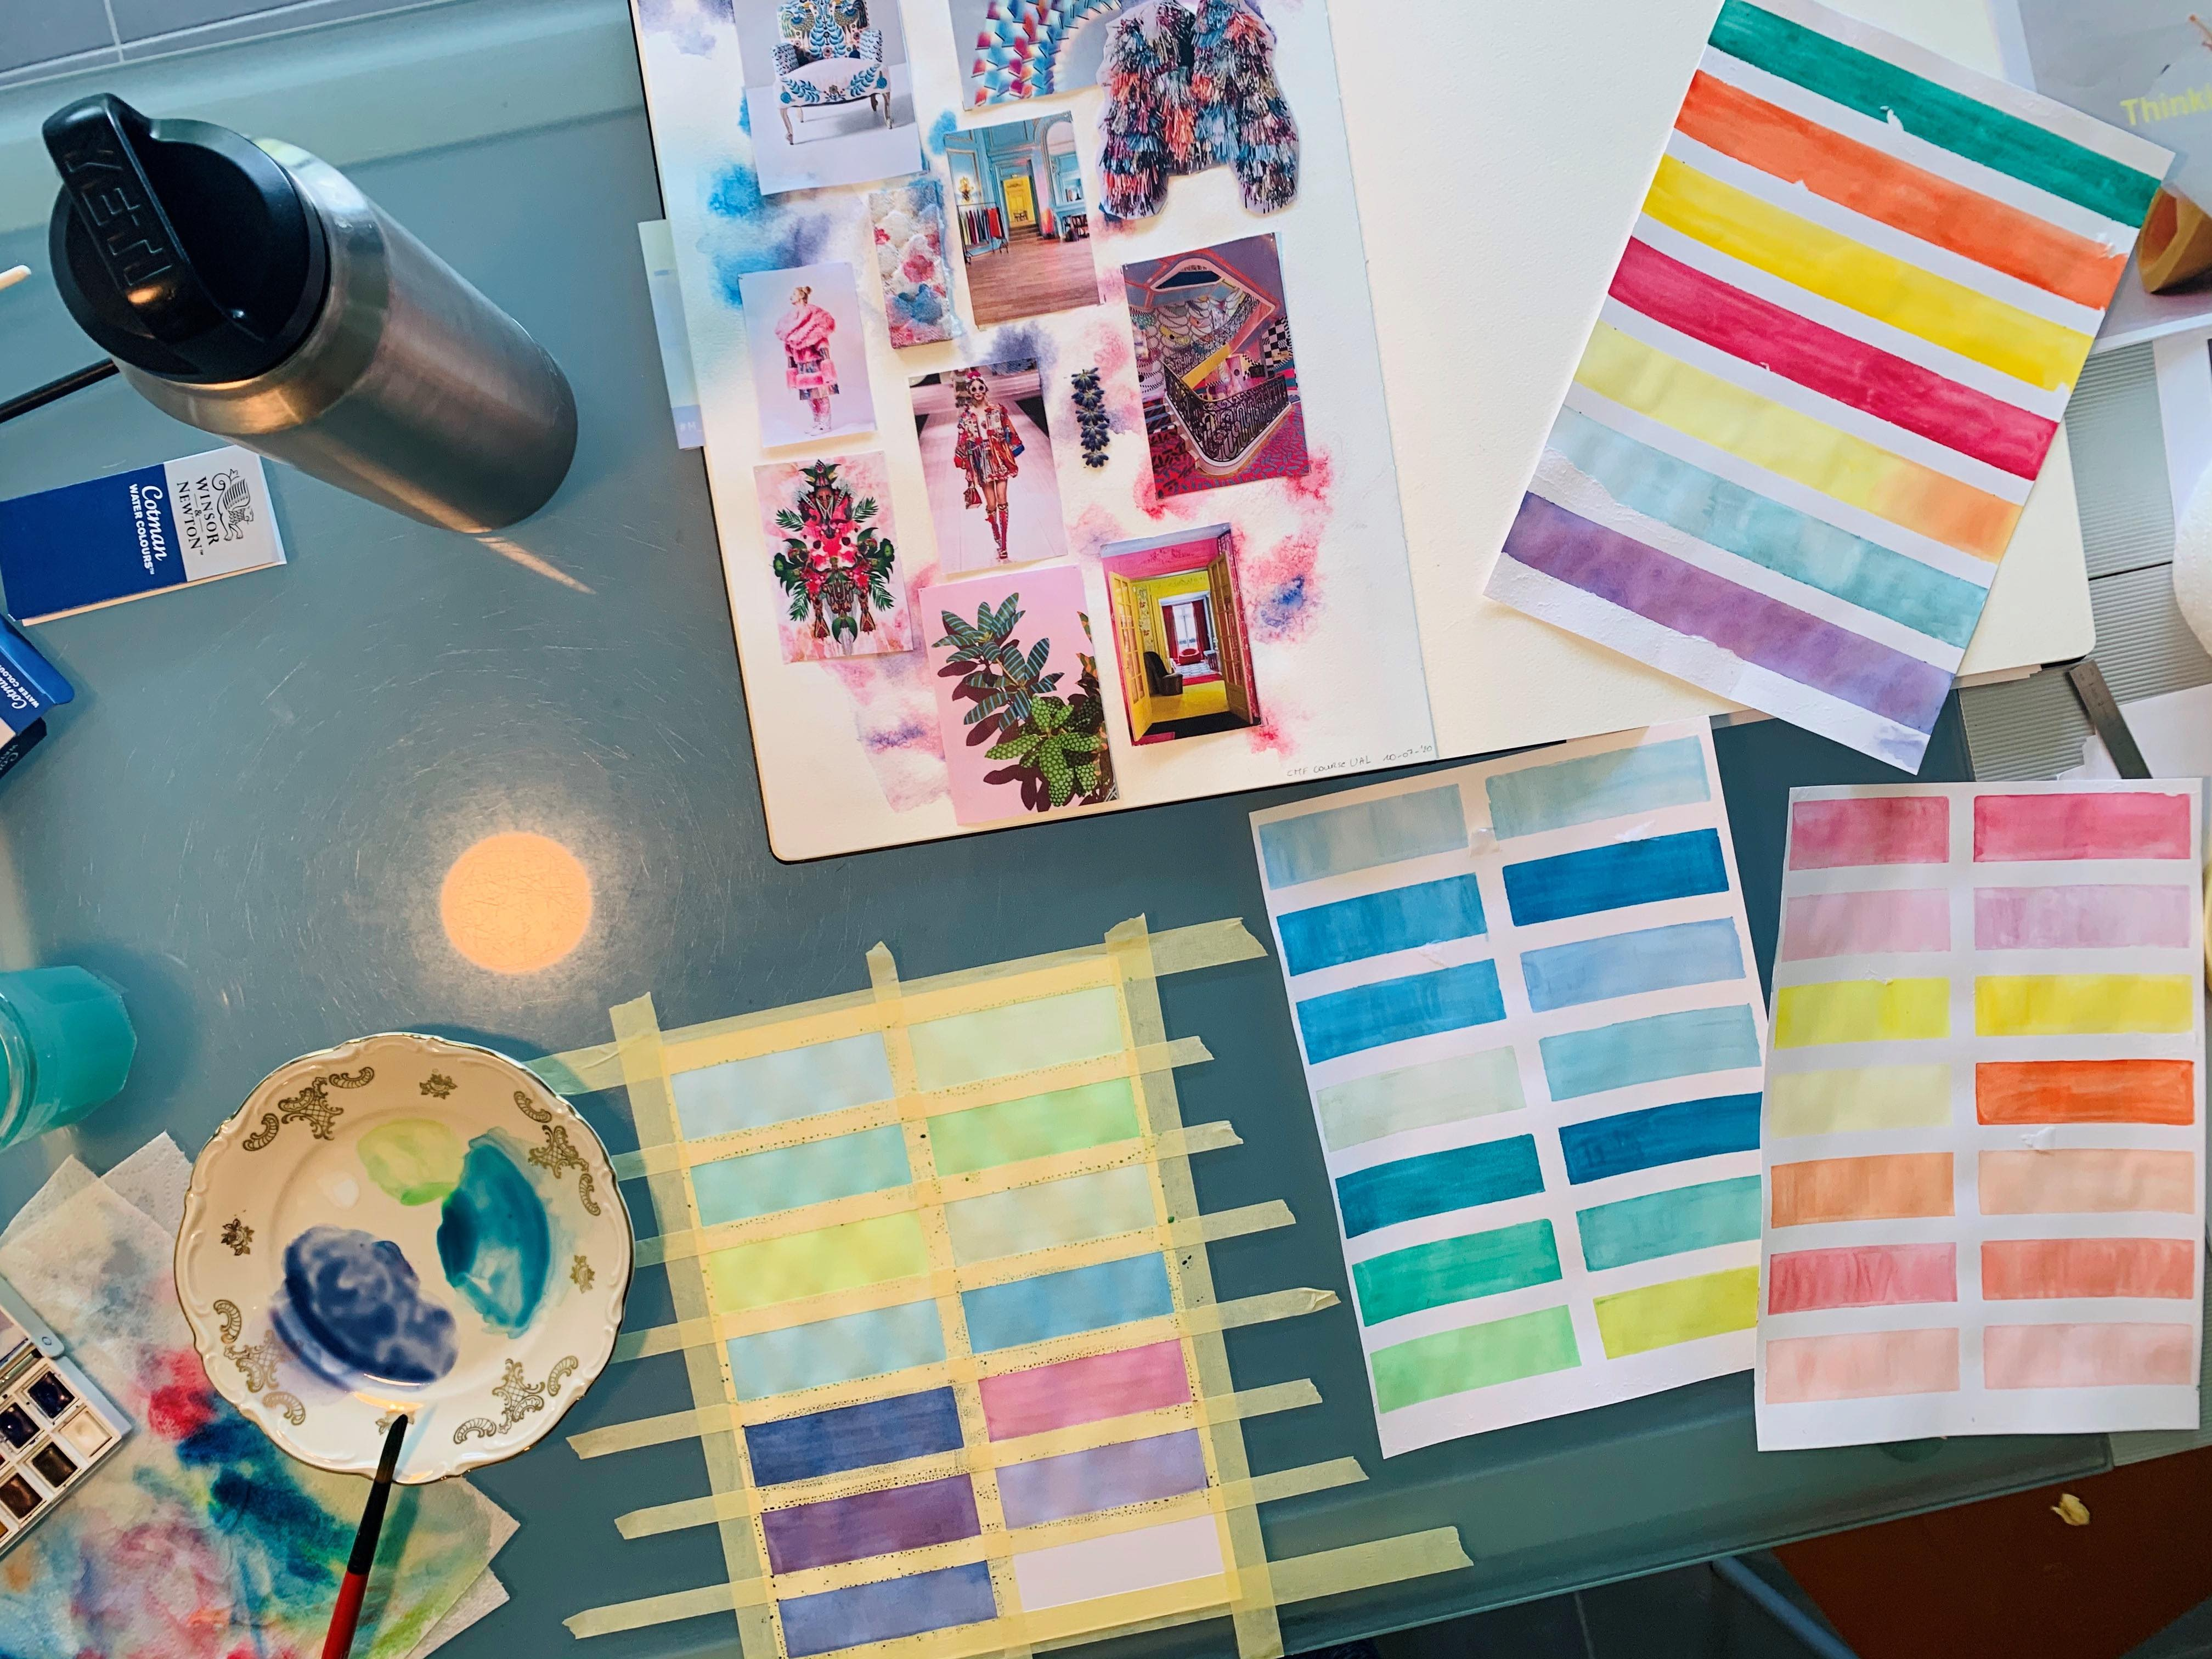 A photo of a desk with paint swatches and sketchbooks